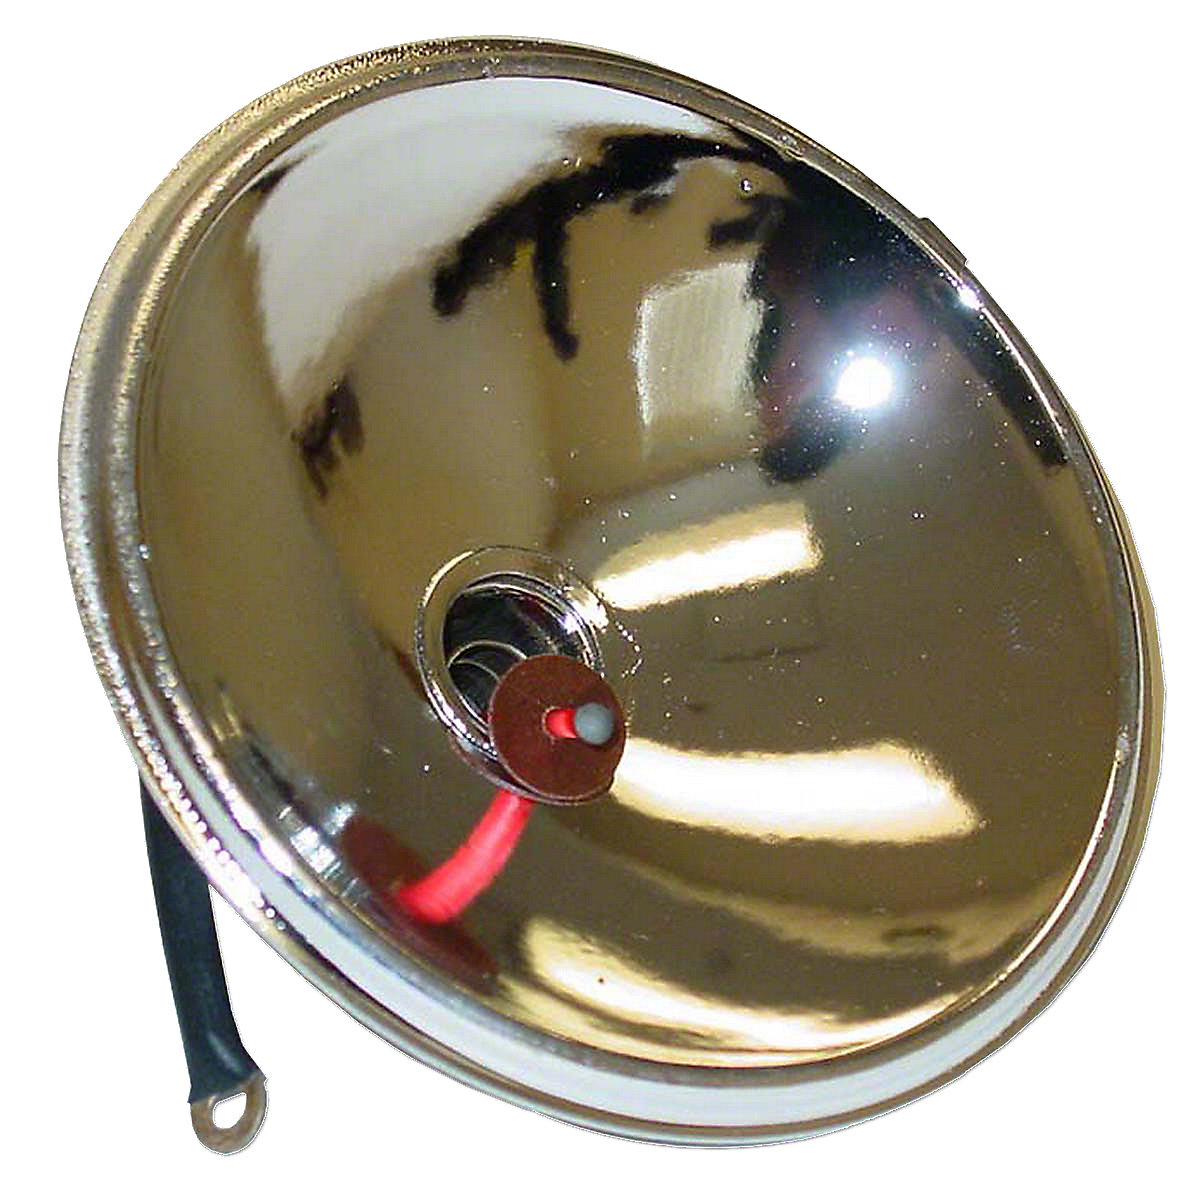 Head Light Reflector For Allis Chalmers: B, C, CA, D10, D12, D14, D15, RC, WC, WD, WD45, WF.